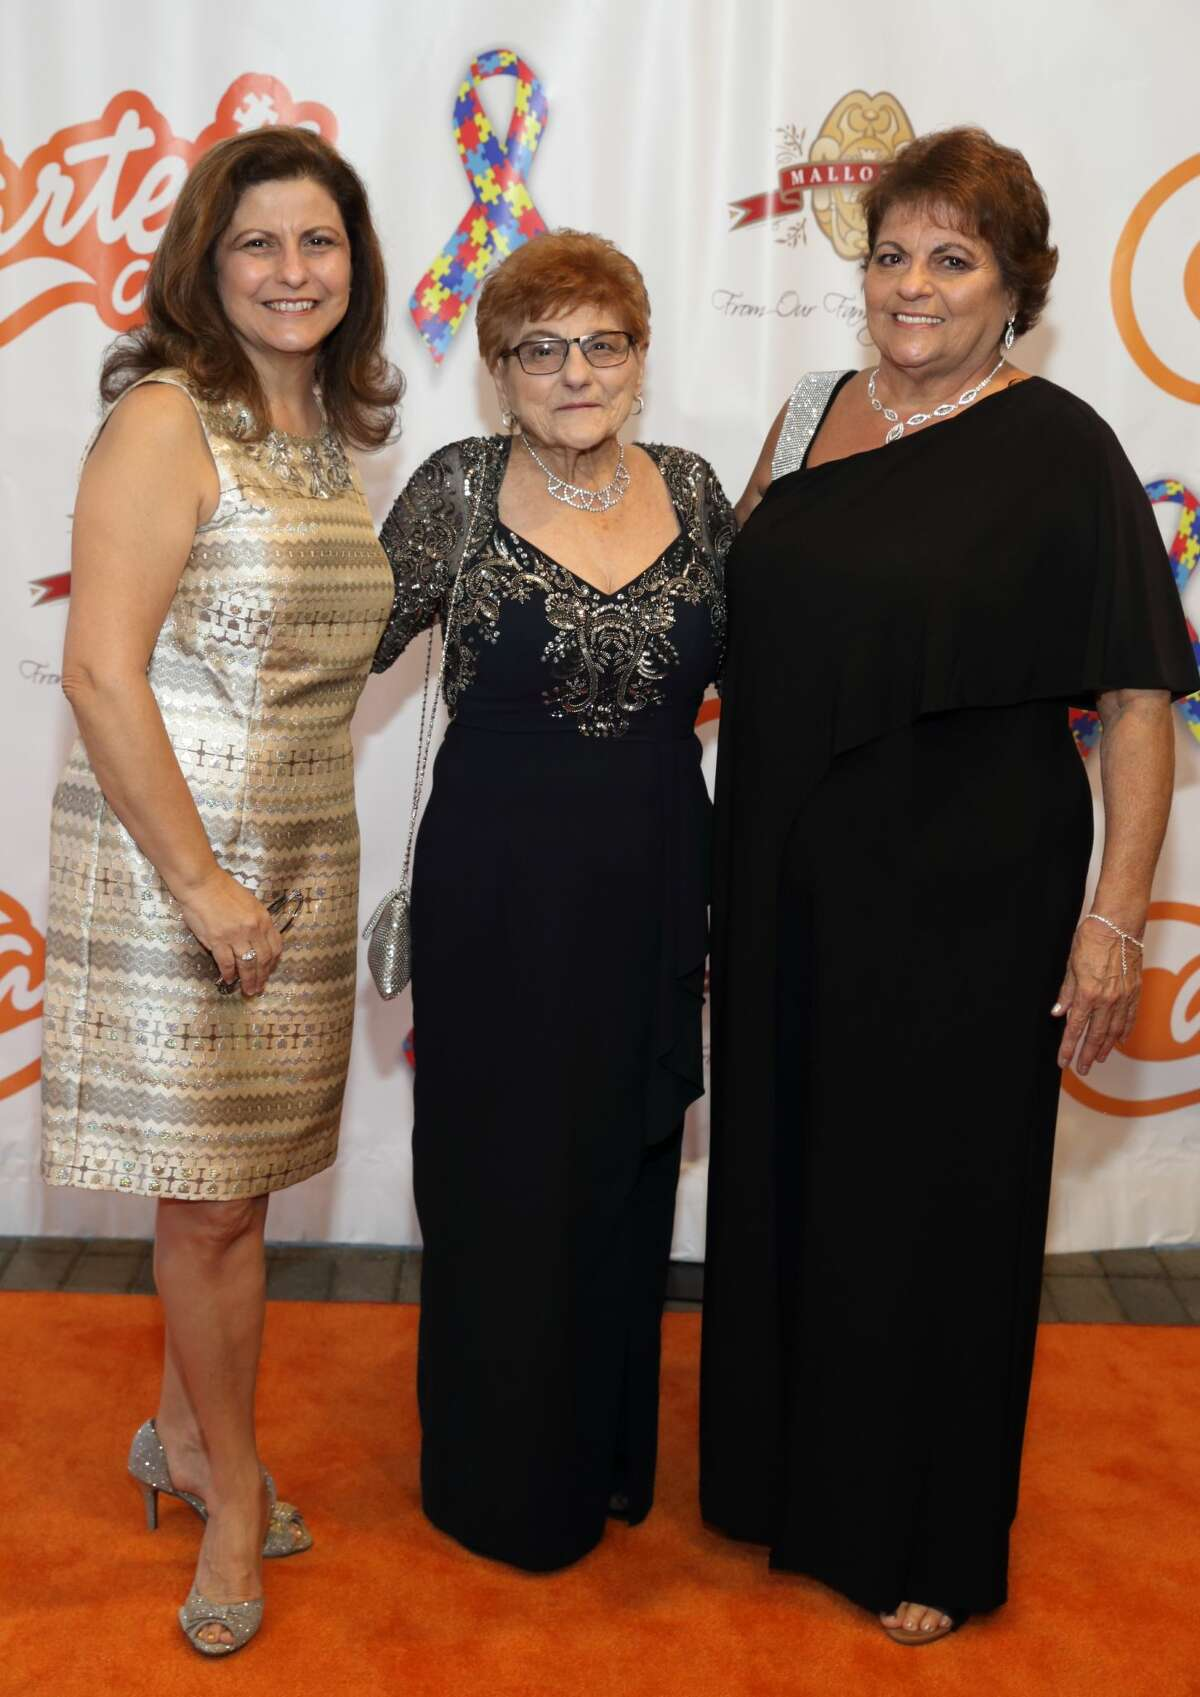 Were you Seen at the Carter's Crew 4th Annual Orange Tie Gala, a benefit dedicated to celebrating, supporting and enhancing the lives of individuals and their families affected by autism, at Mallozzi's in Schenectady, October 20, 2018?